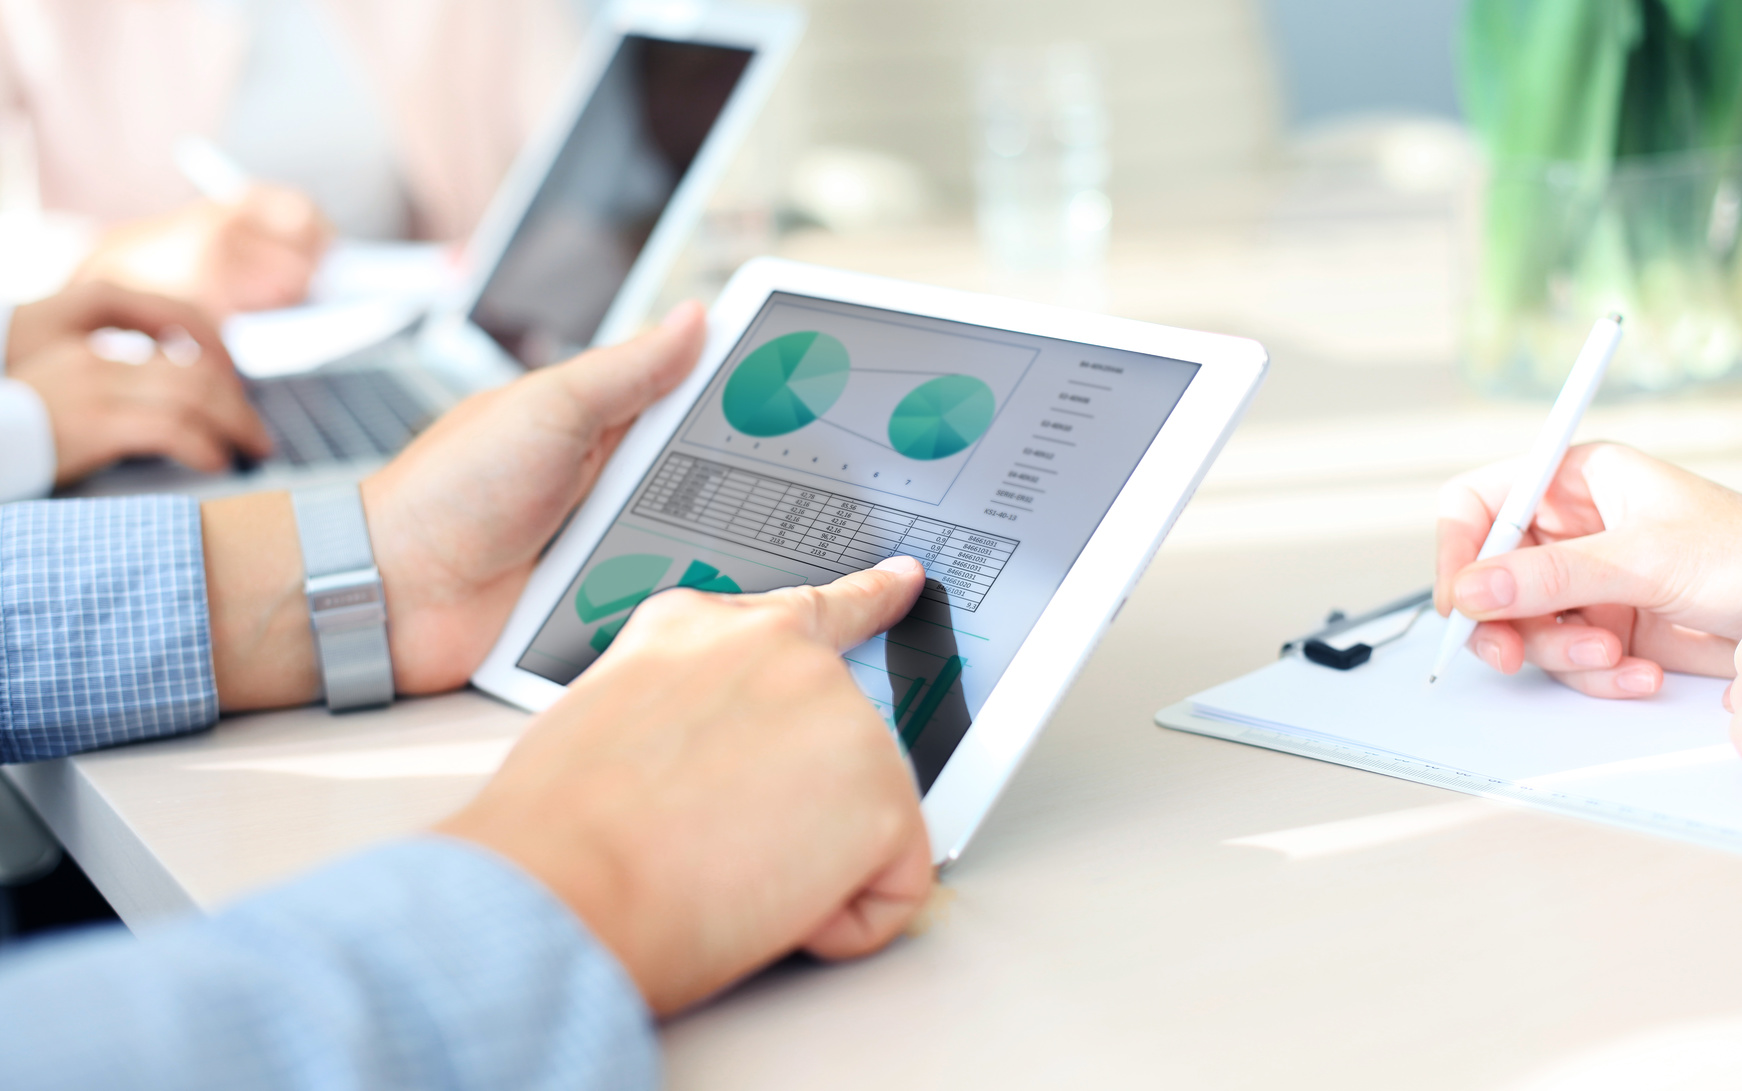 business_person_analyzing_financial_statistics_displayed_on_the_tablet_screen